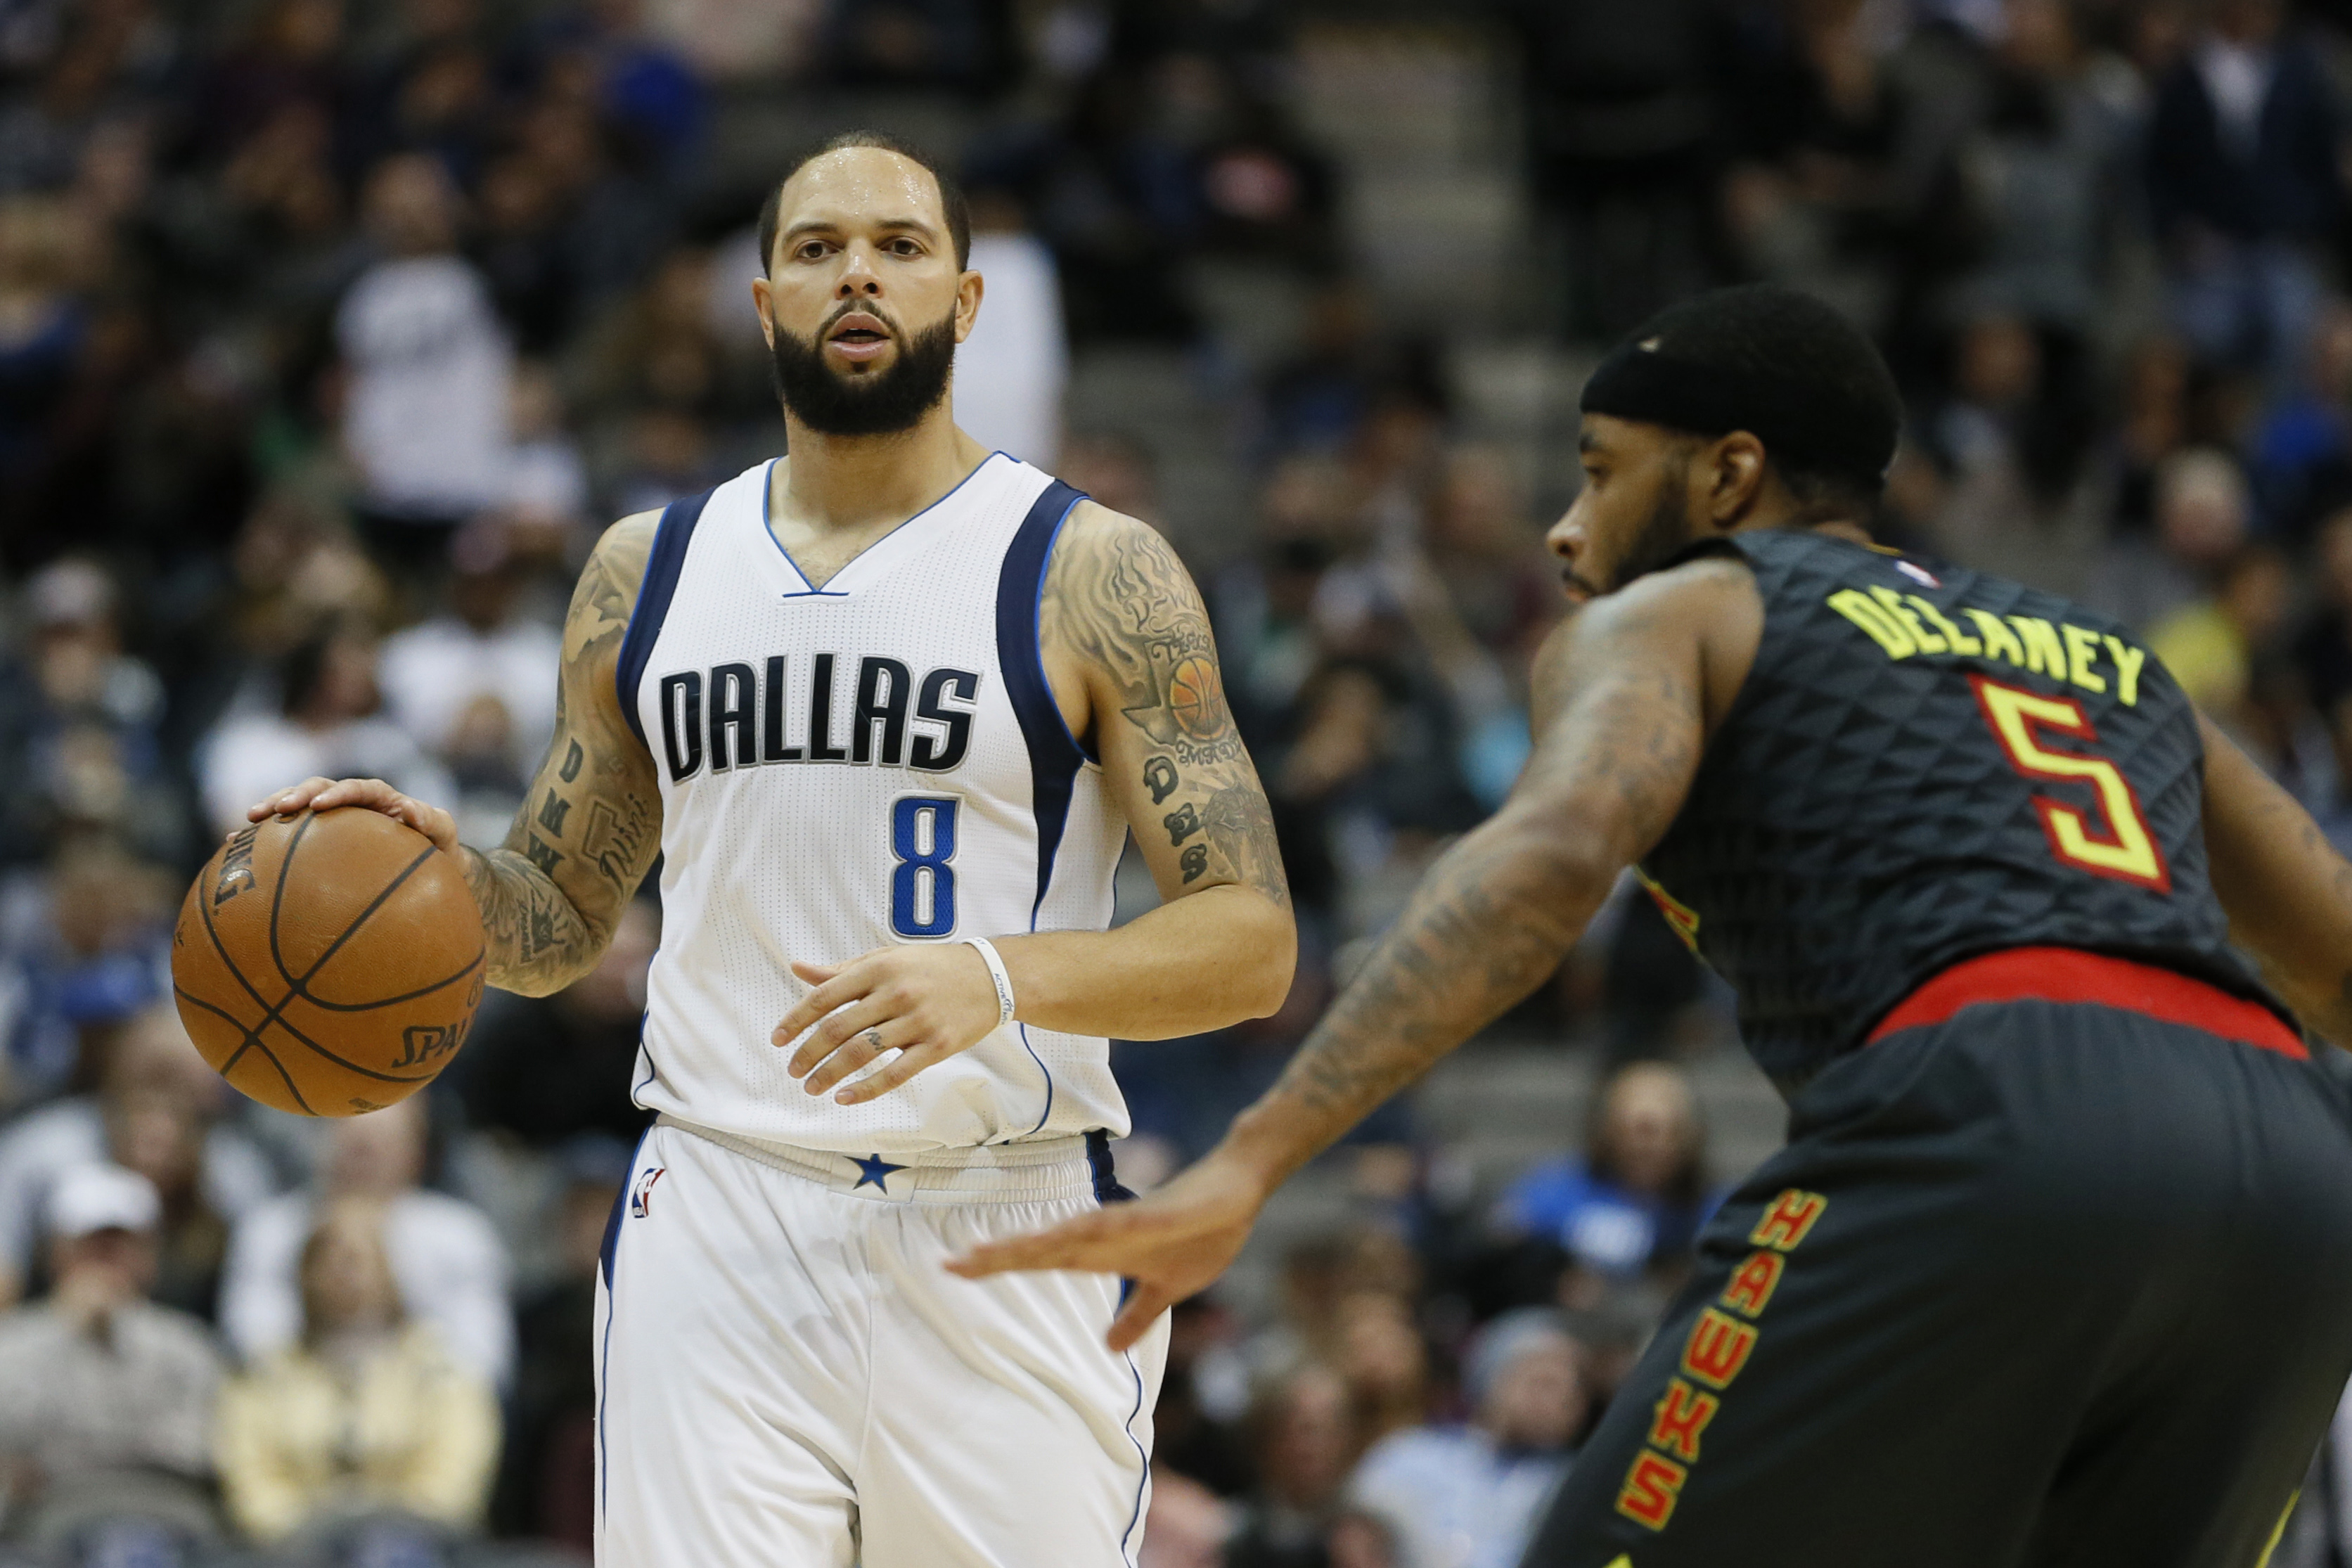 Jan 7, 2017; Dallas, TX, USA; Dallas Mavericks guard Deron Williams (8) is guarded by Atlanta Hawks guard Malcolm Delaney (5) in the fourth quarter at American Airlines Center. Mandatory Credit: Tim Heitman-USA TODAY Sports